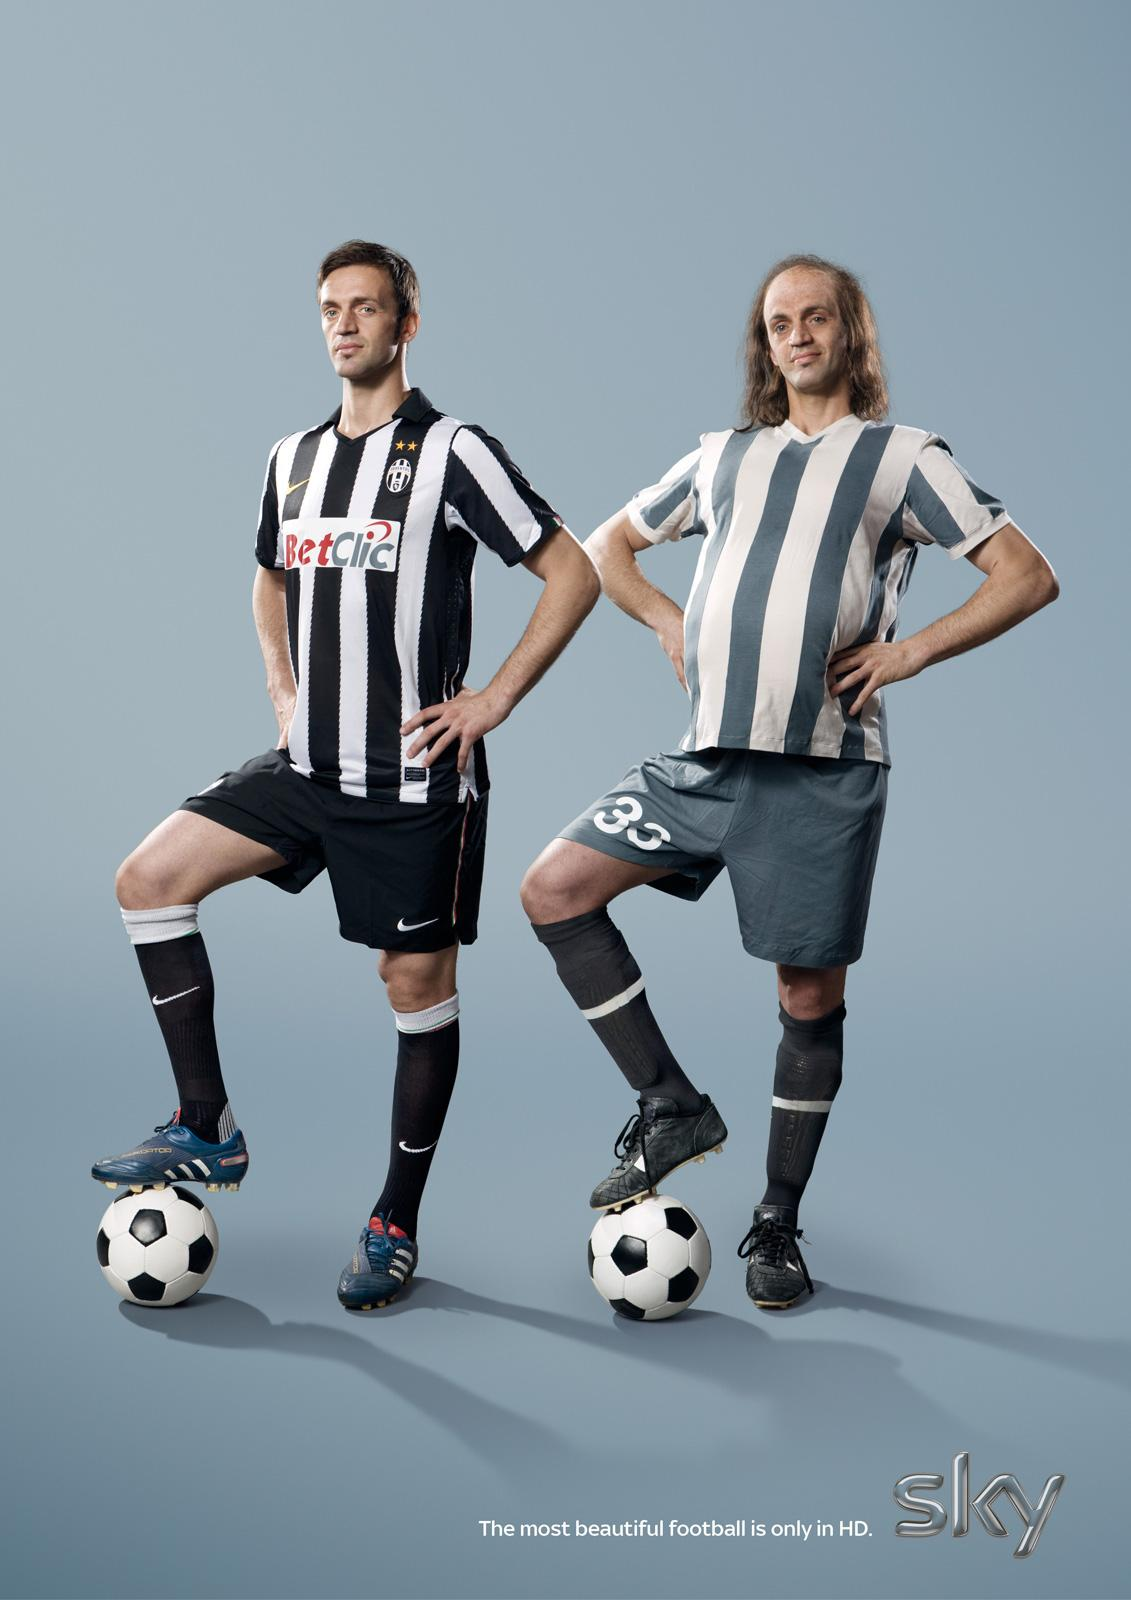 SKY Print Ad -  The most beautiful football, Le Grottaglie